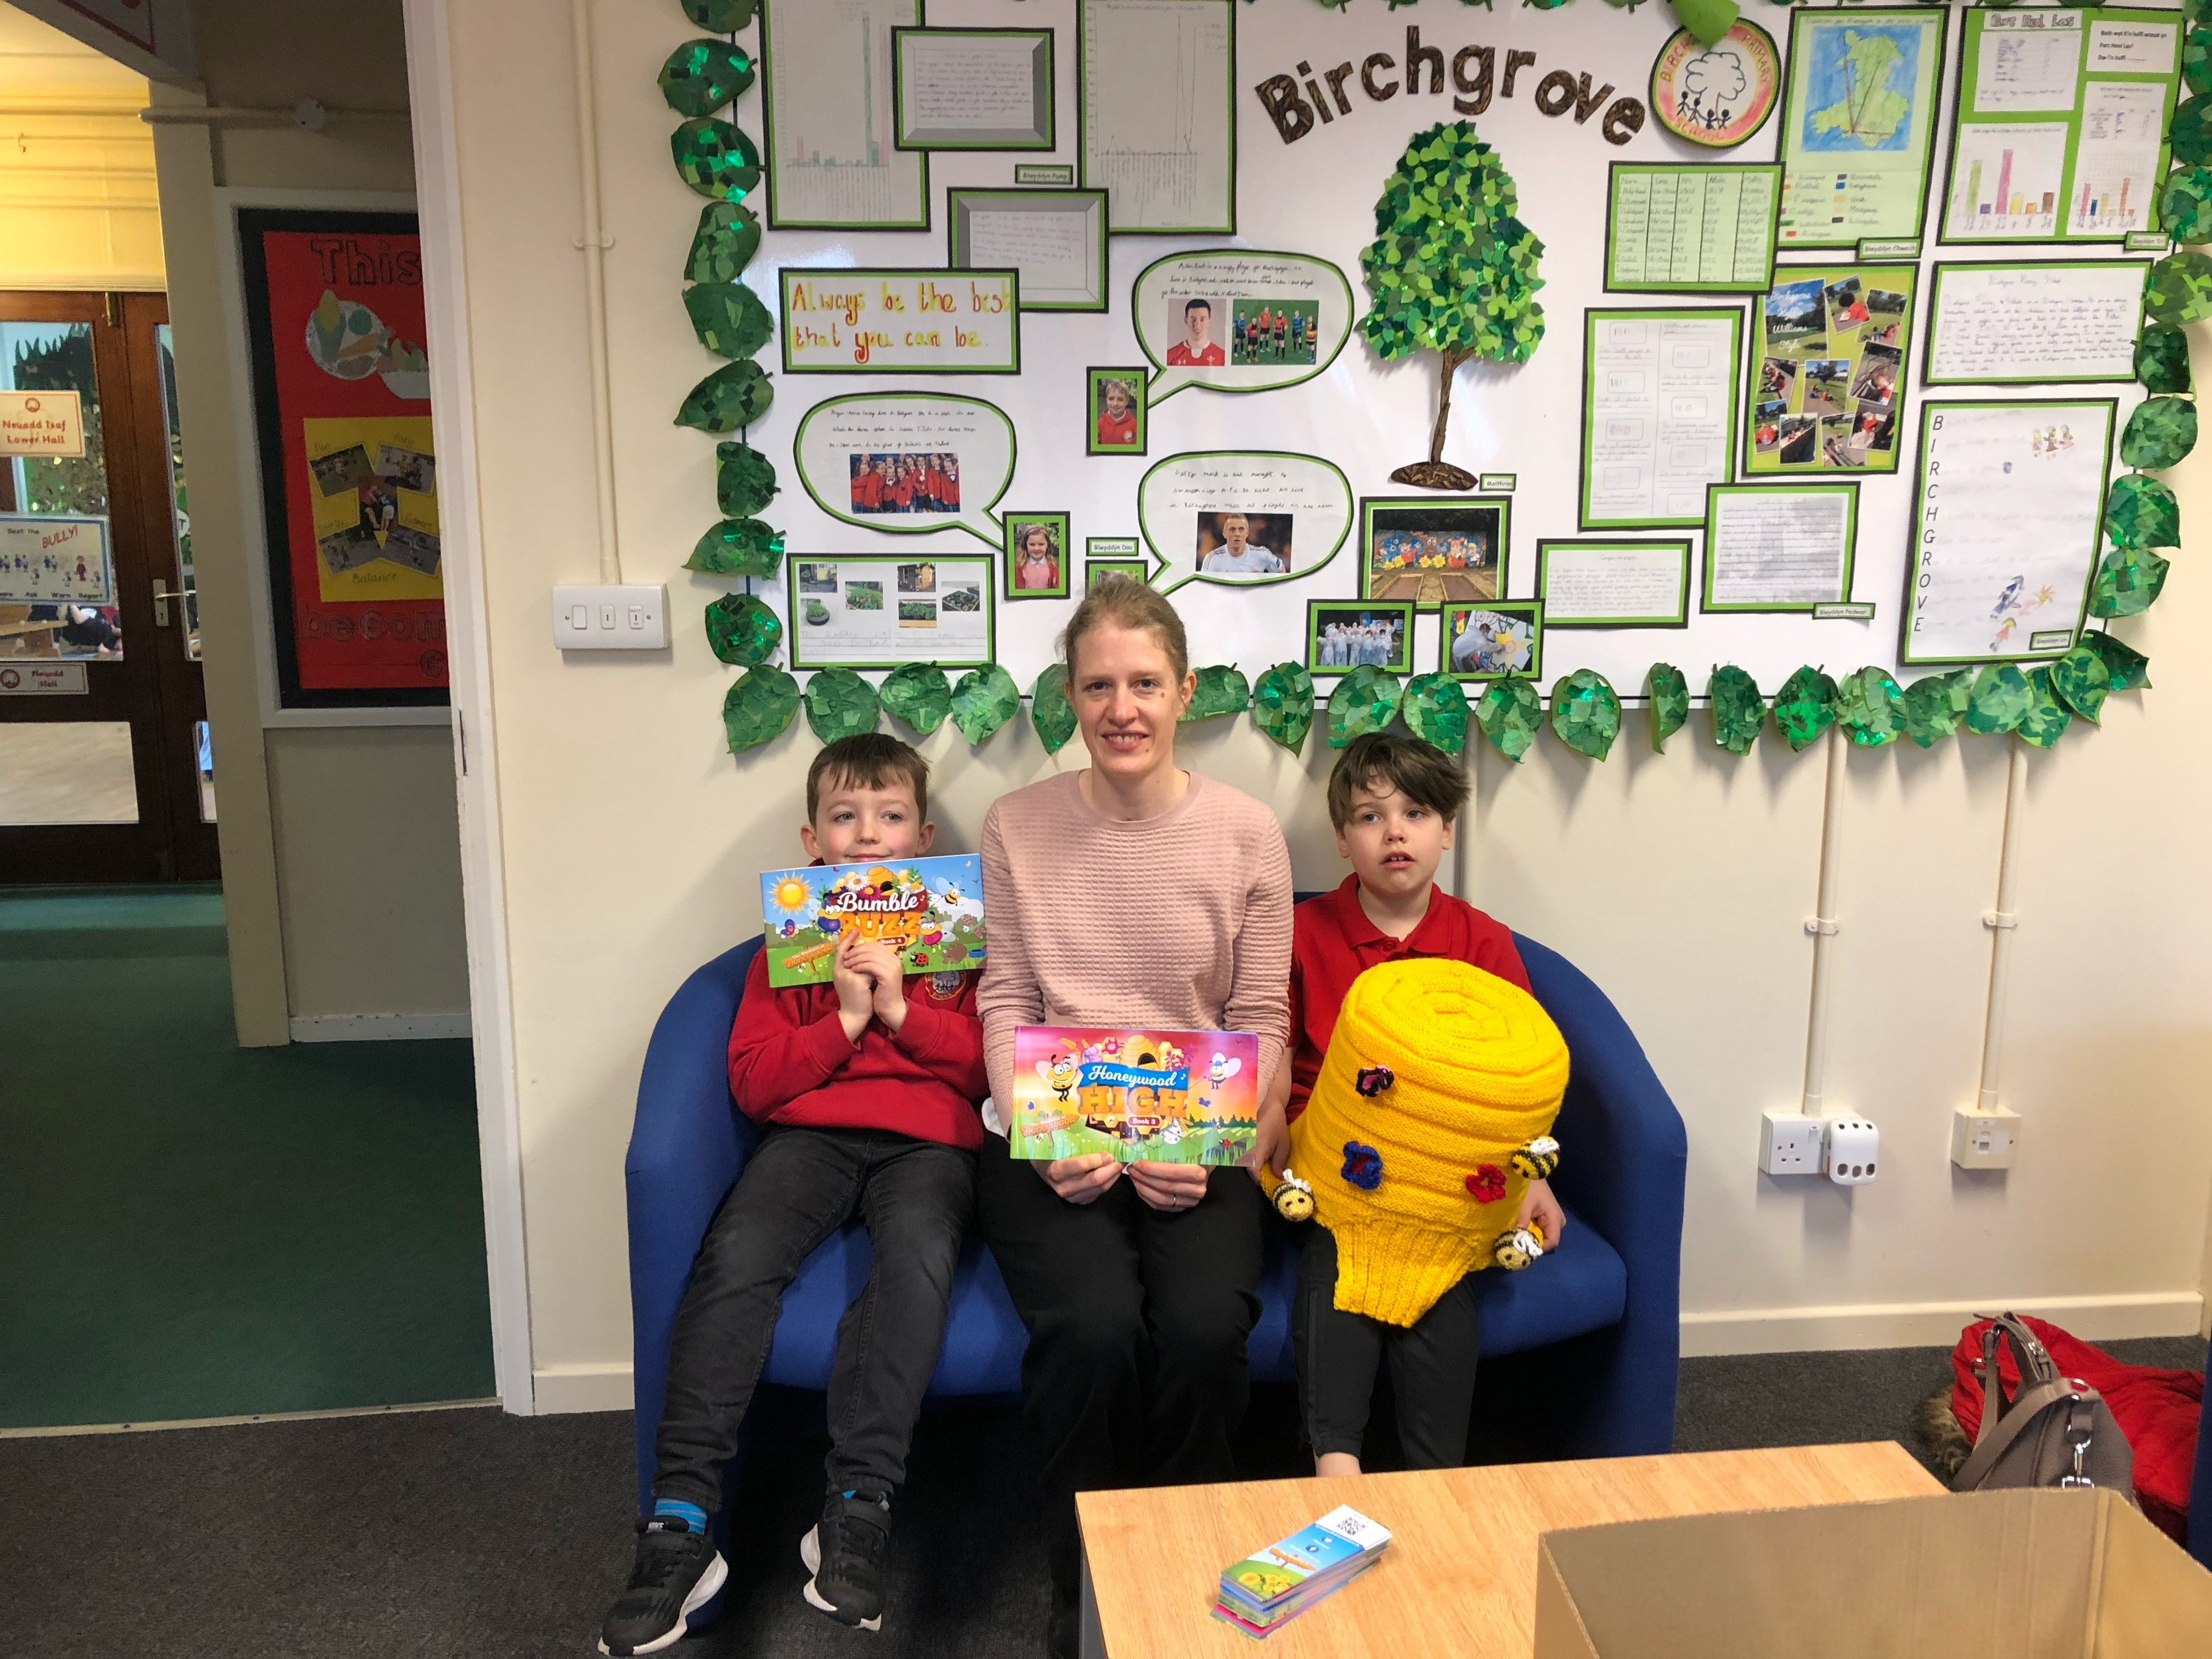 Wolfestone staff member with children at a Swansea school Bumbles of Honeywood project